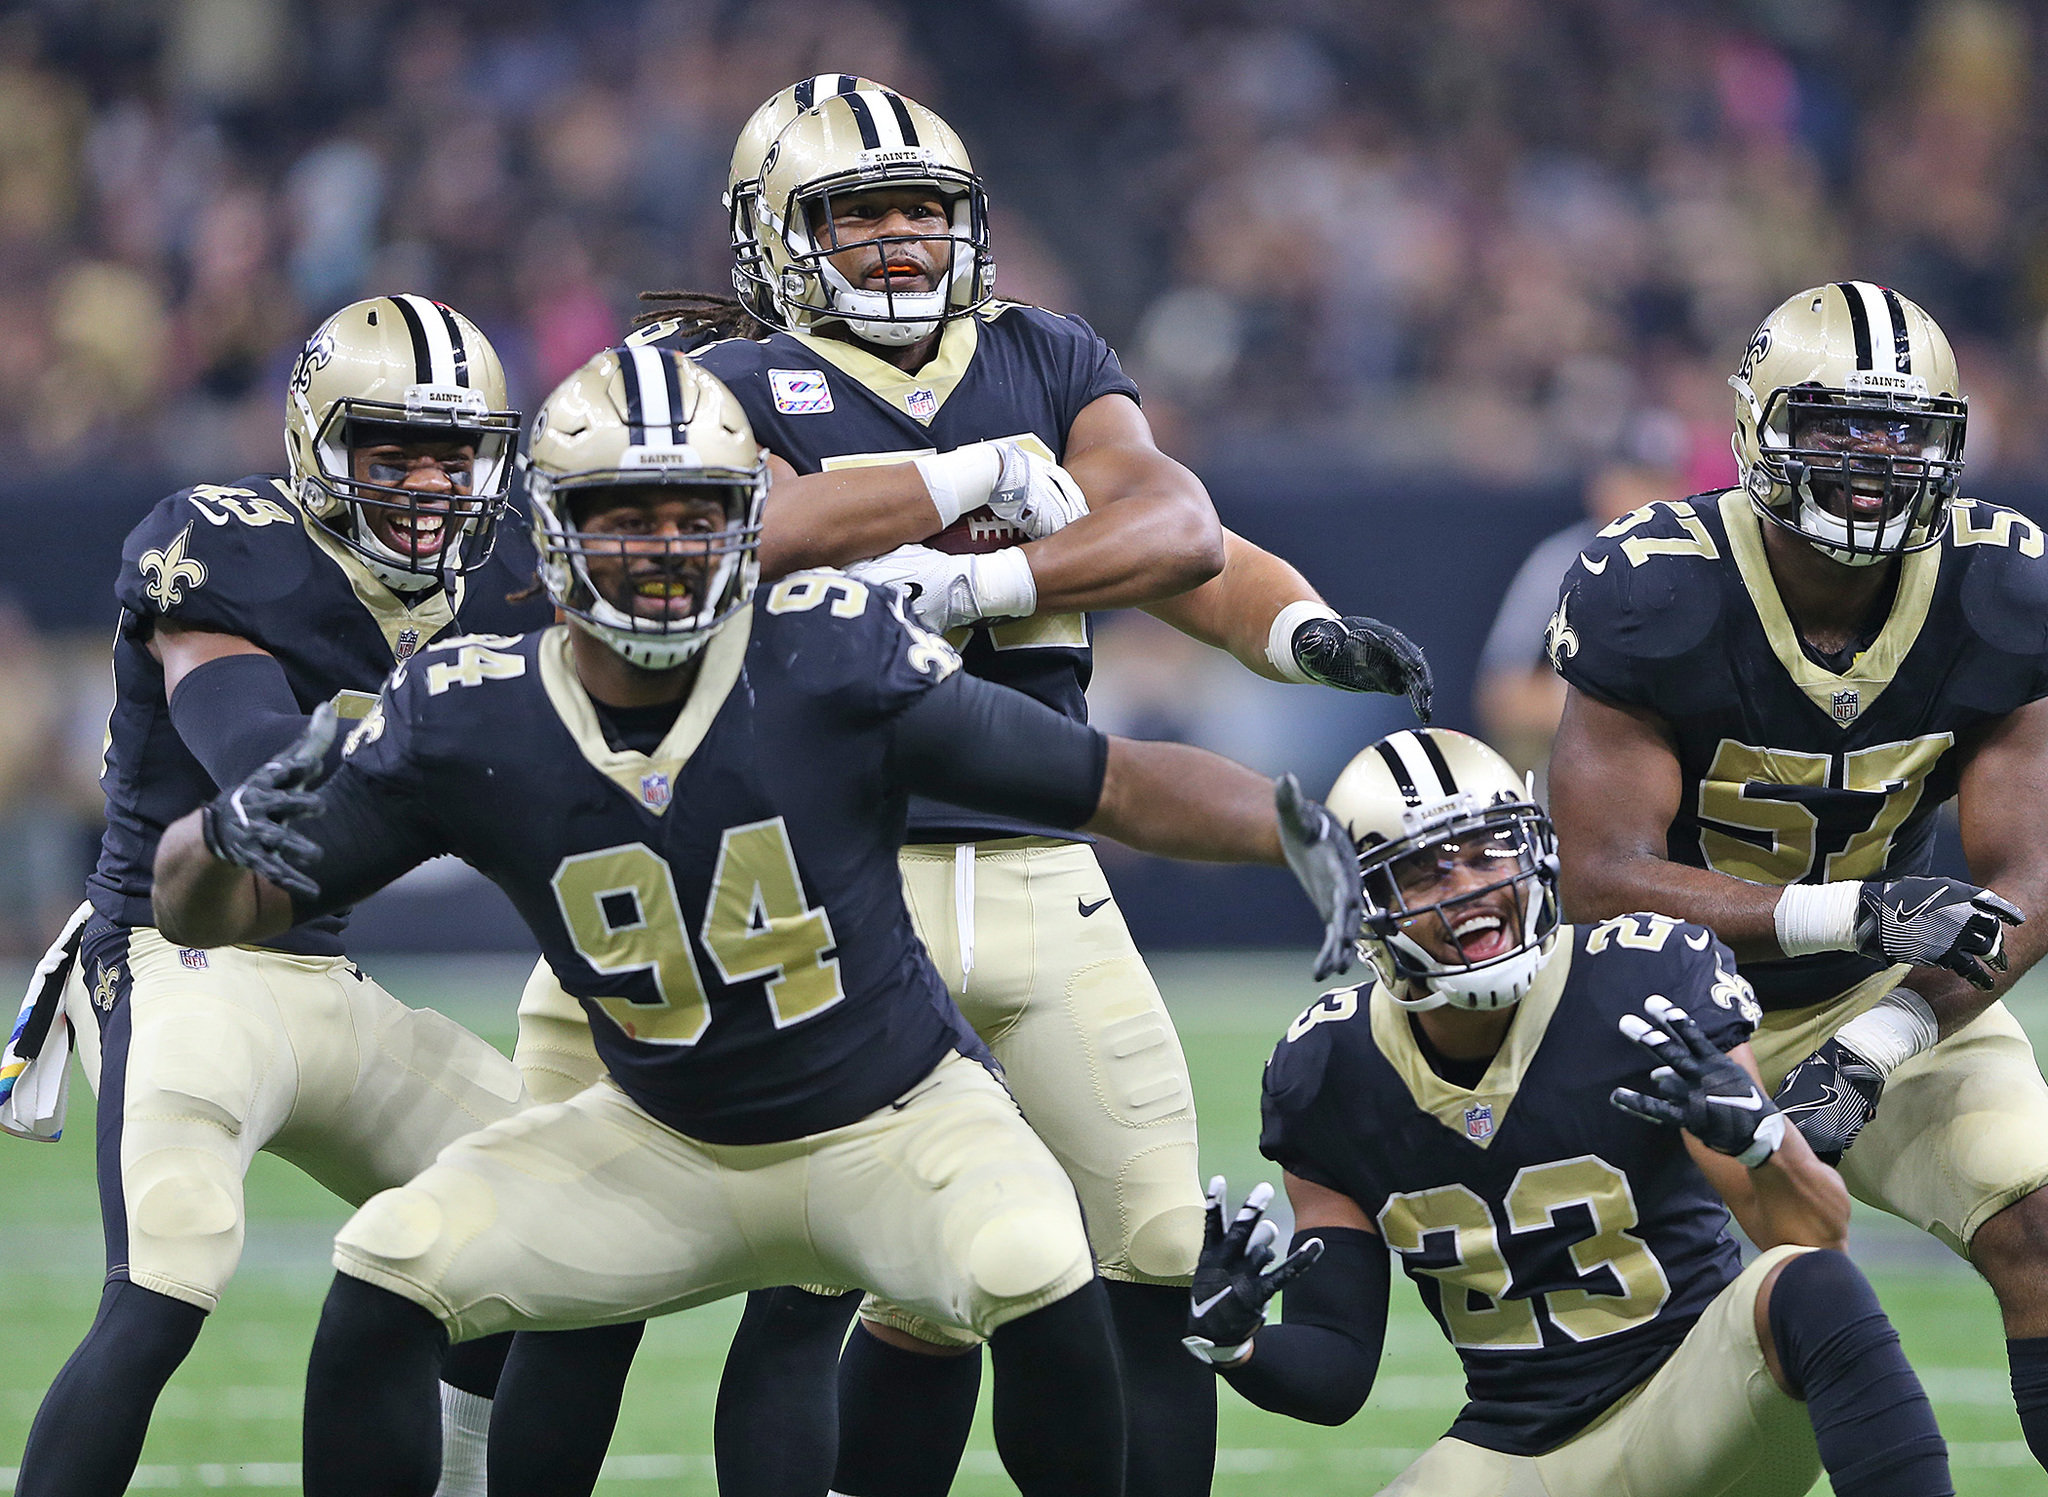 Bills - Saints Predictions featuring @evancdent, @mmigliore, @rcanepac, and @mack10zie!